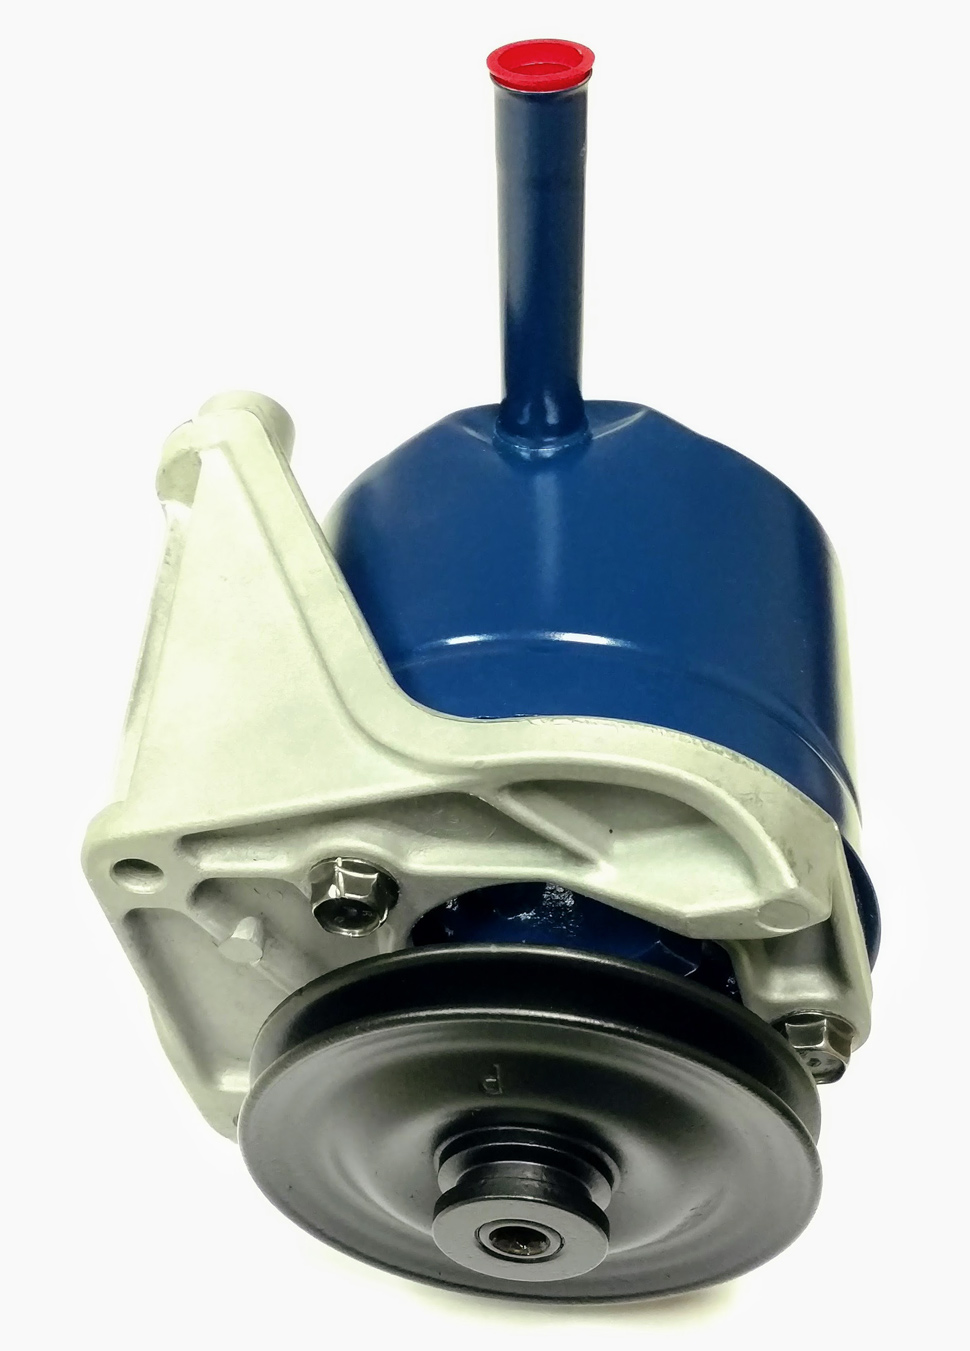 Ford Shelby Mustang Power Steering Pump